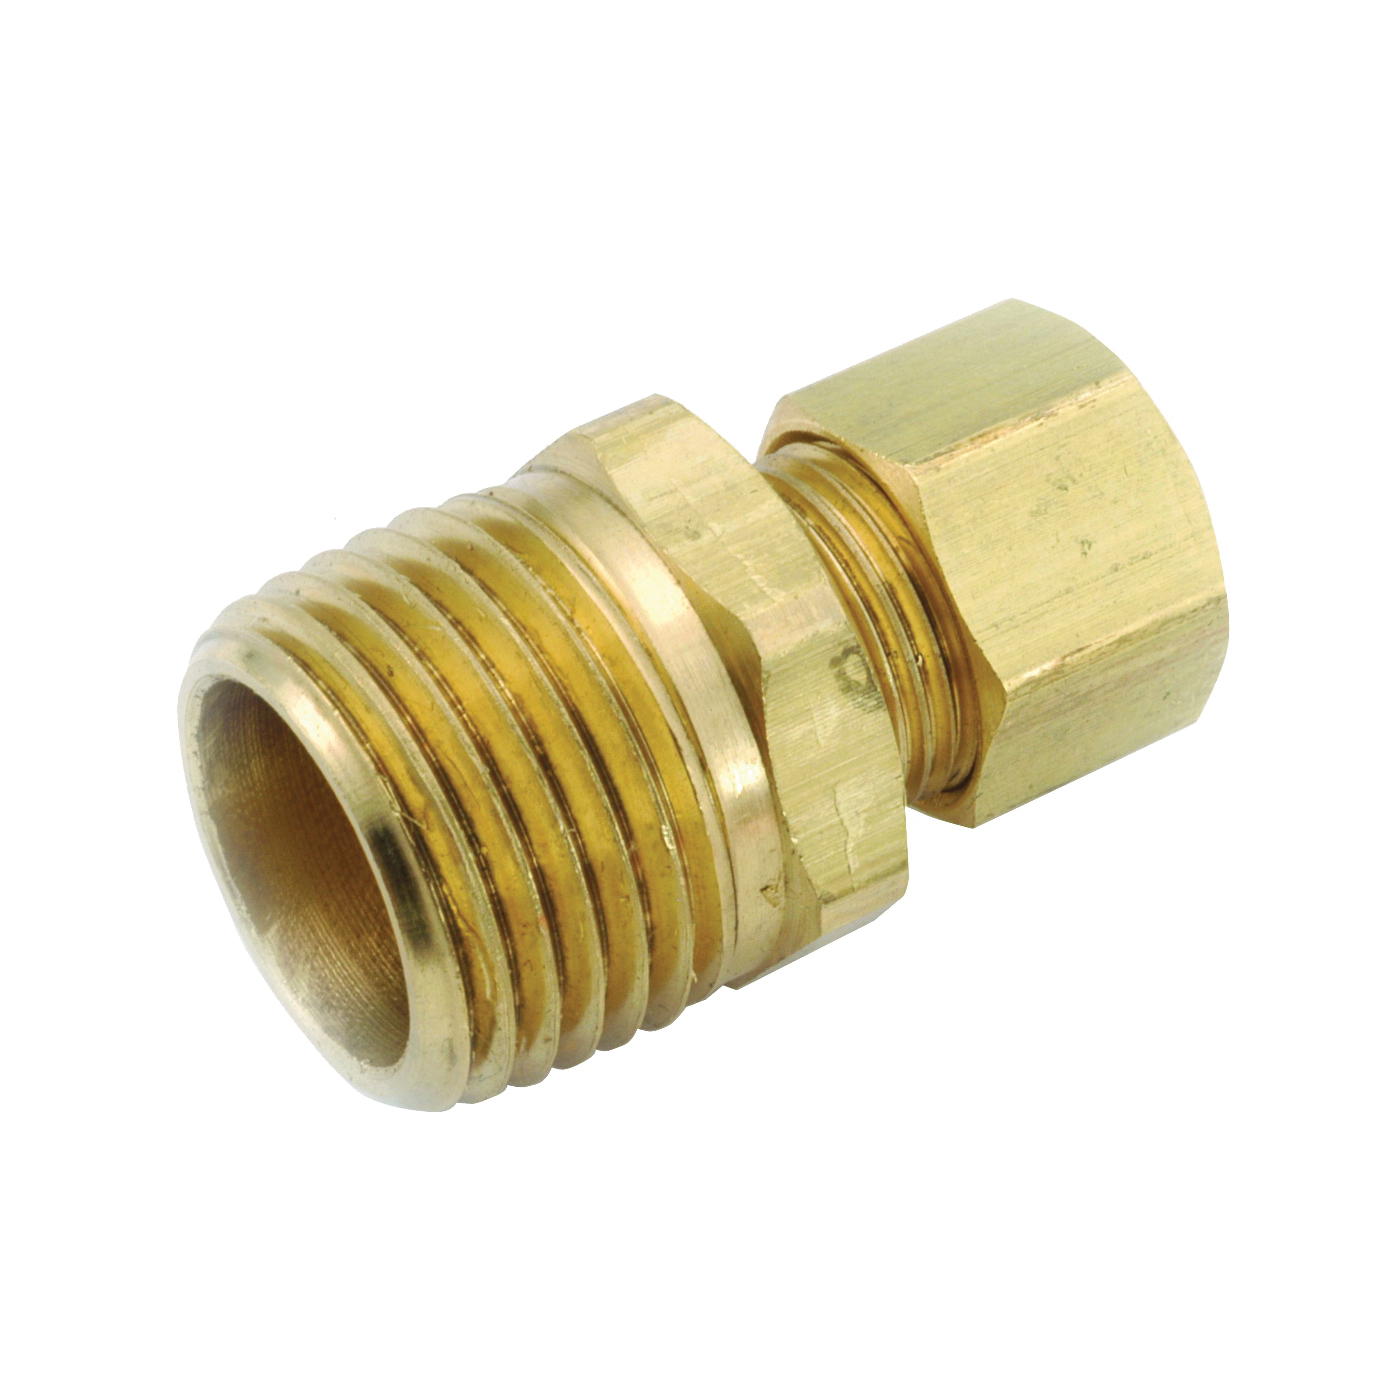 Picture of Anderson Metals 750068-0602 Connector, 3/8 in Compression, 1/8 in MPT